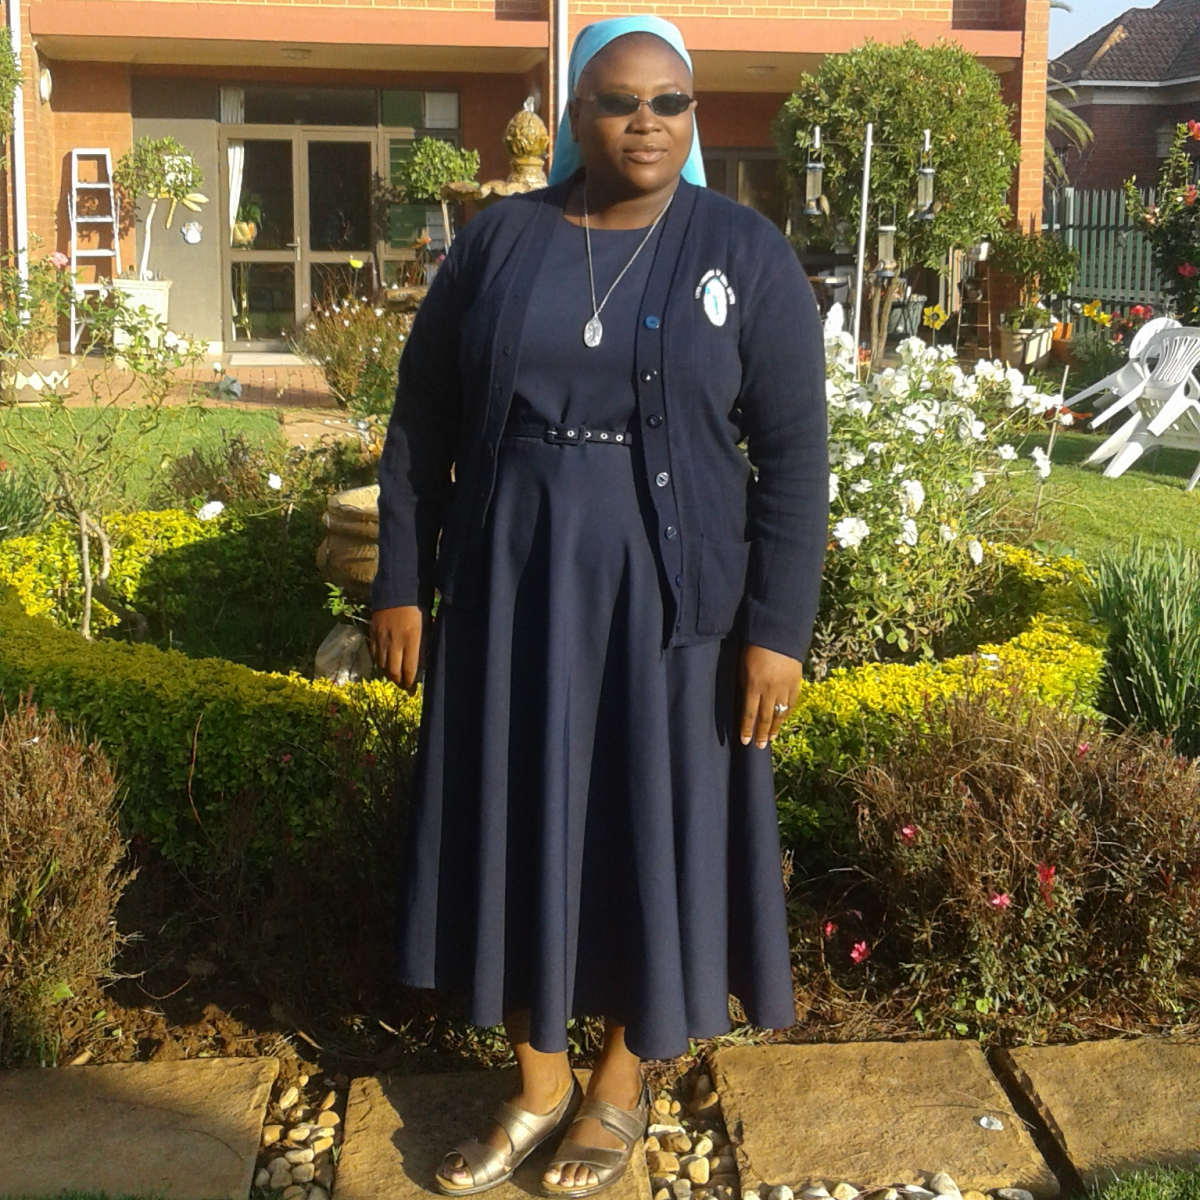 Sister Itayi nun outside in sun